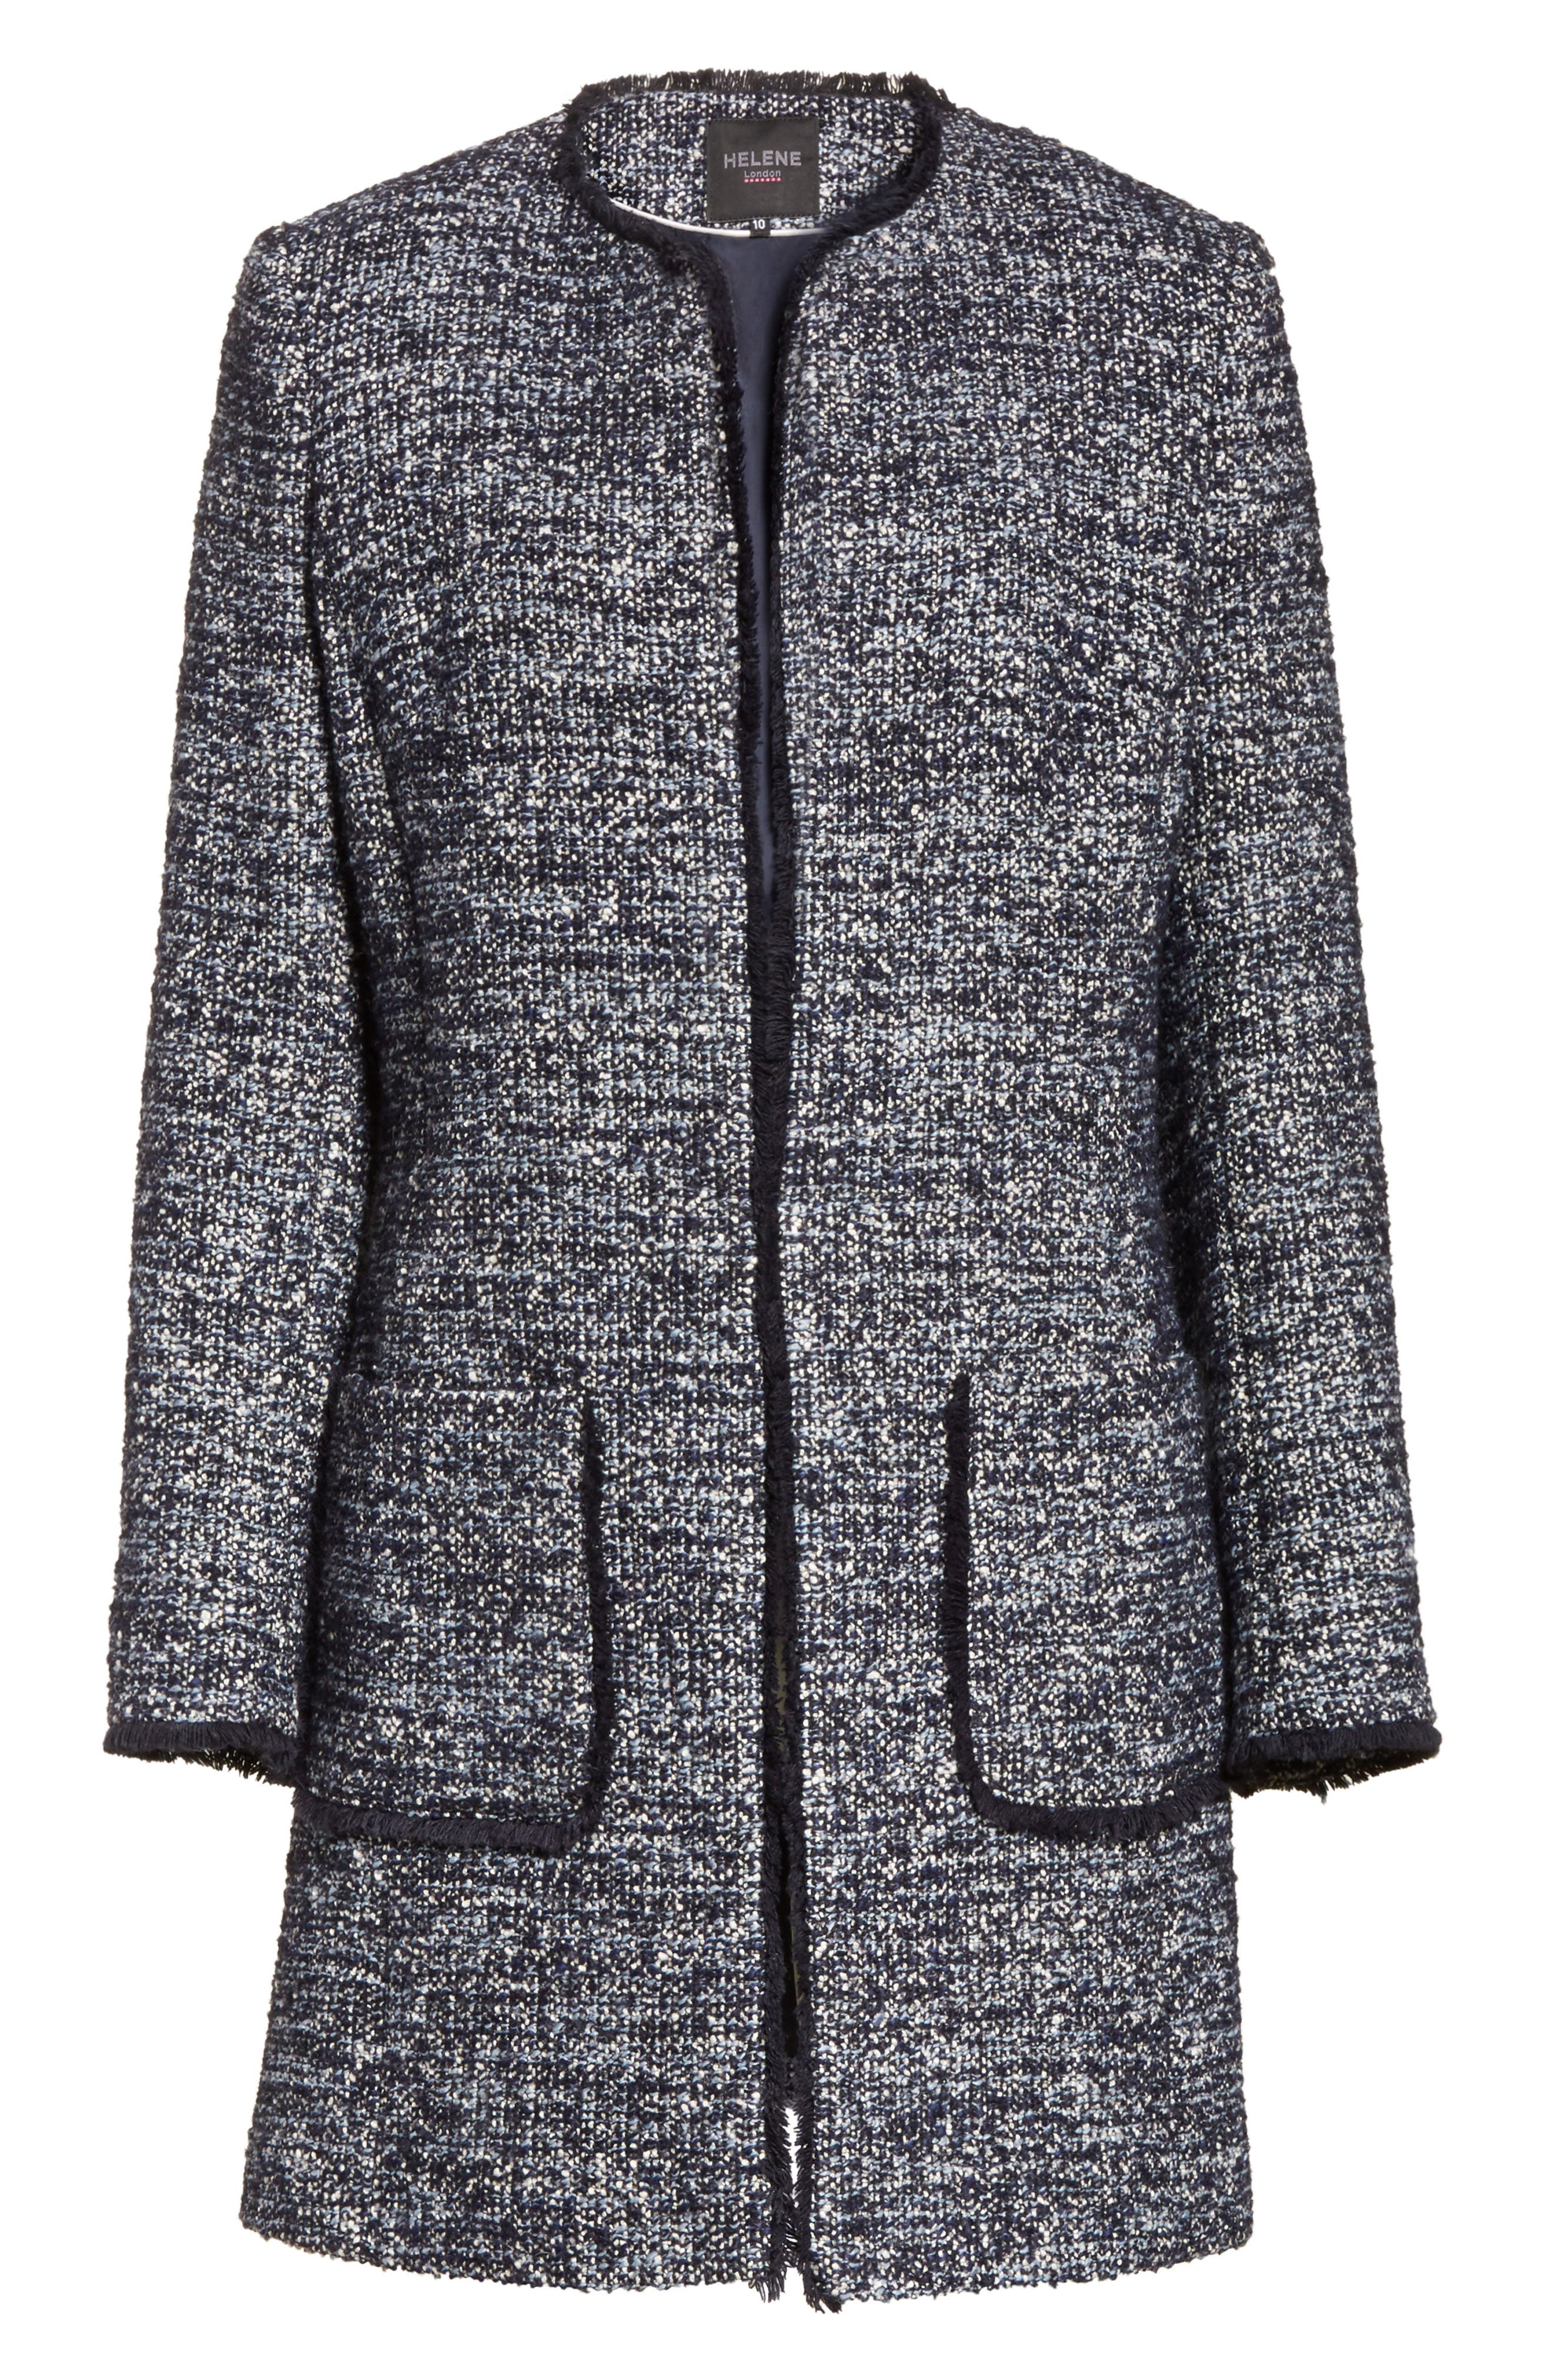 Alice Tweed Jacket,                             Alternate thumbnail 6, color,                             Navy/ Pale Blue